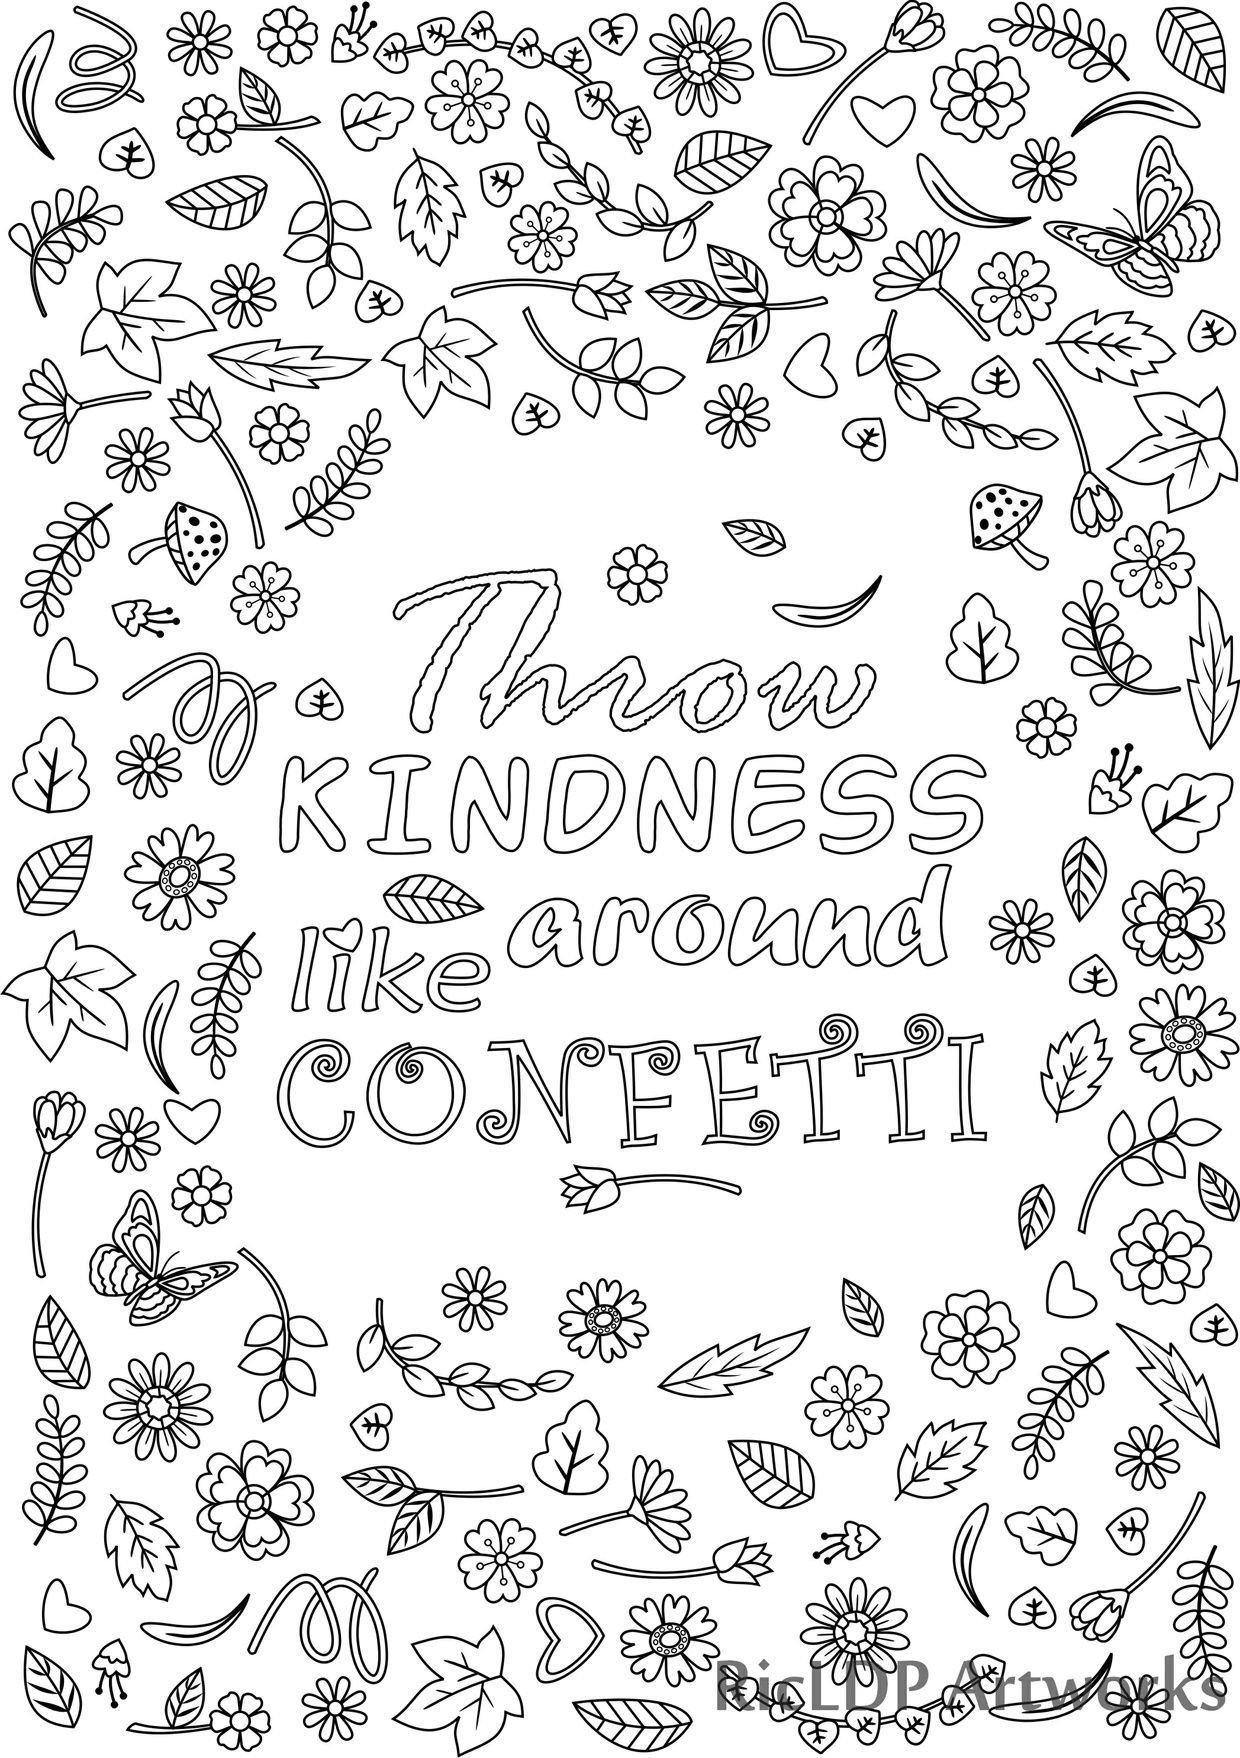 Kindness Coloring Pages Free Printable